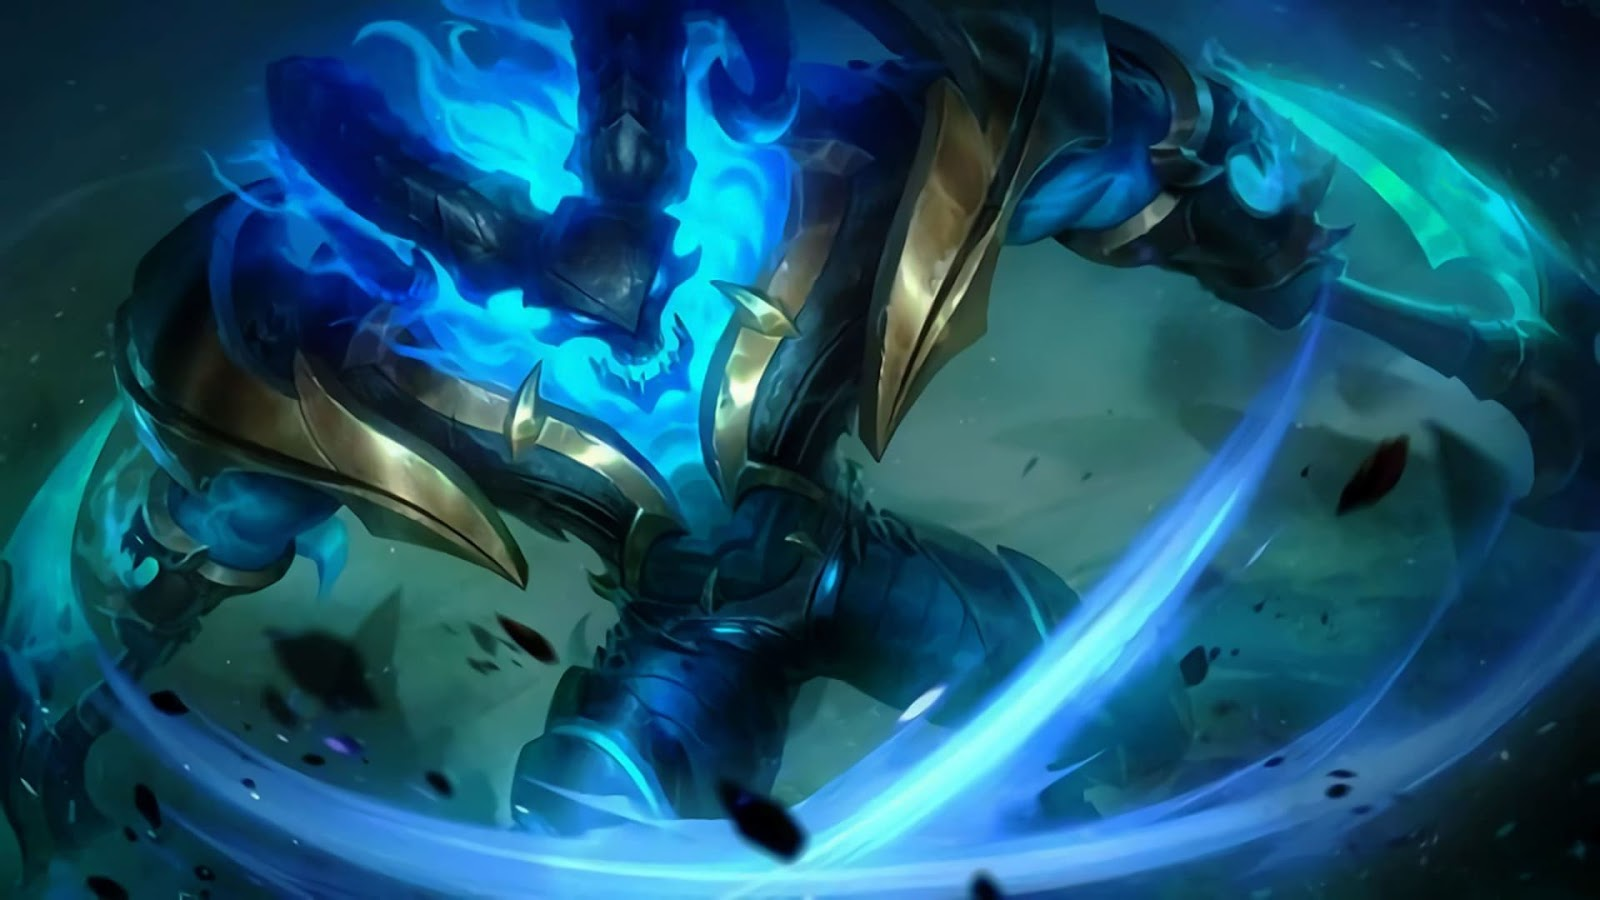 Wallpaper Thamuz Lord of Wraith Skin Mobile Legends HD for PC